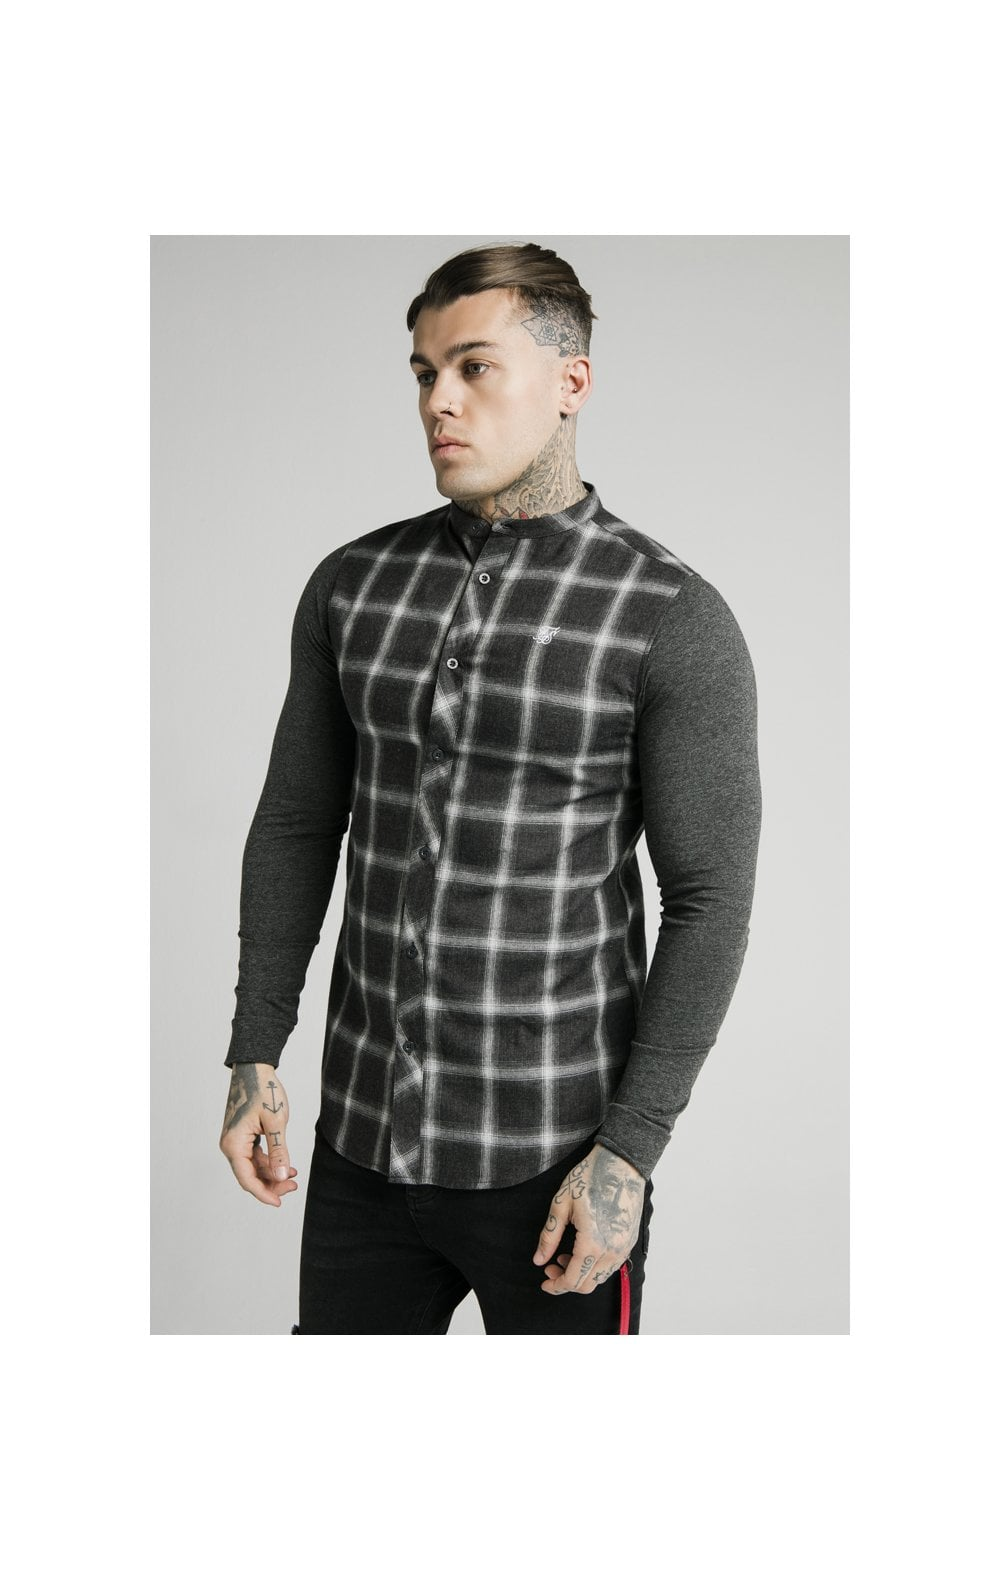 SikSilk L/S Flannel Check Grandad Shirt - Charcoal (1)